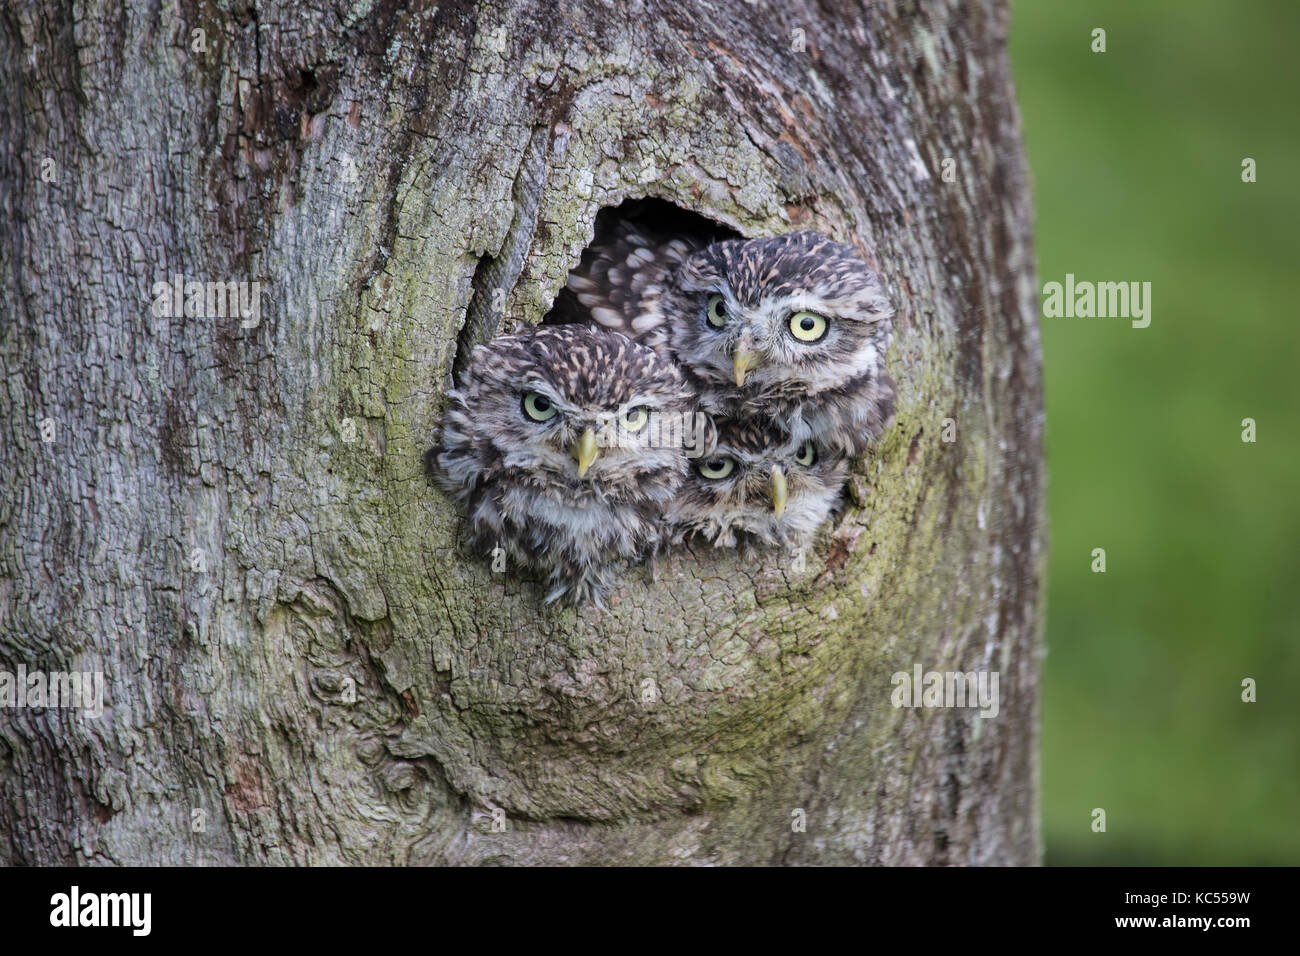 Three Little Owls Athene noctua peeping out from a hole in a tree - Stock Image